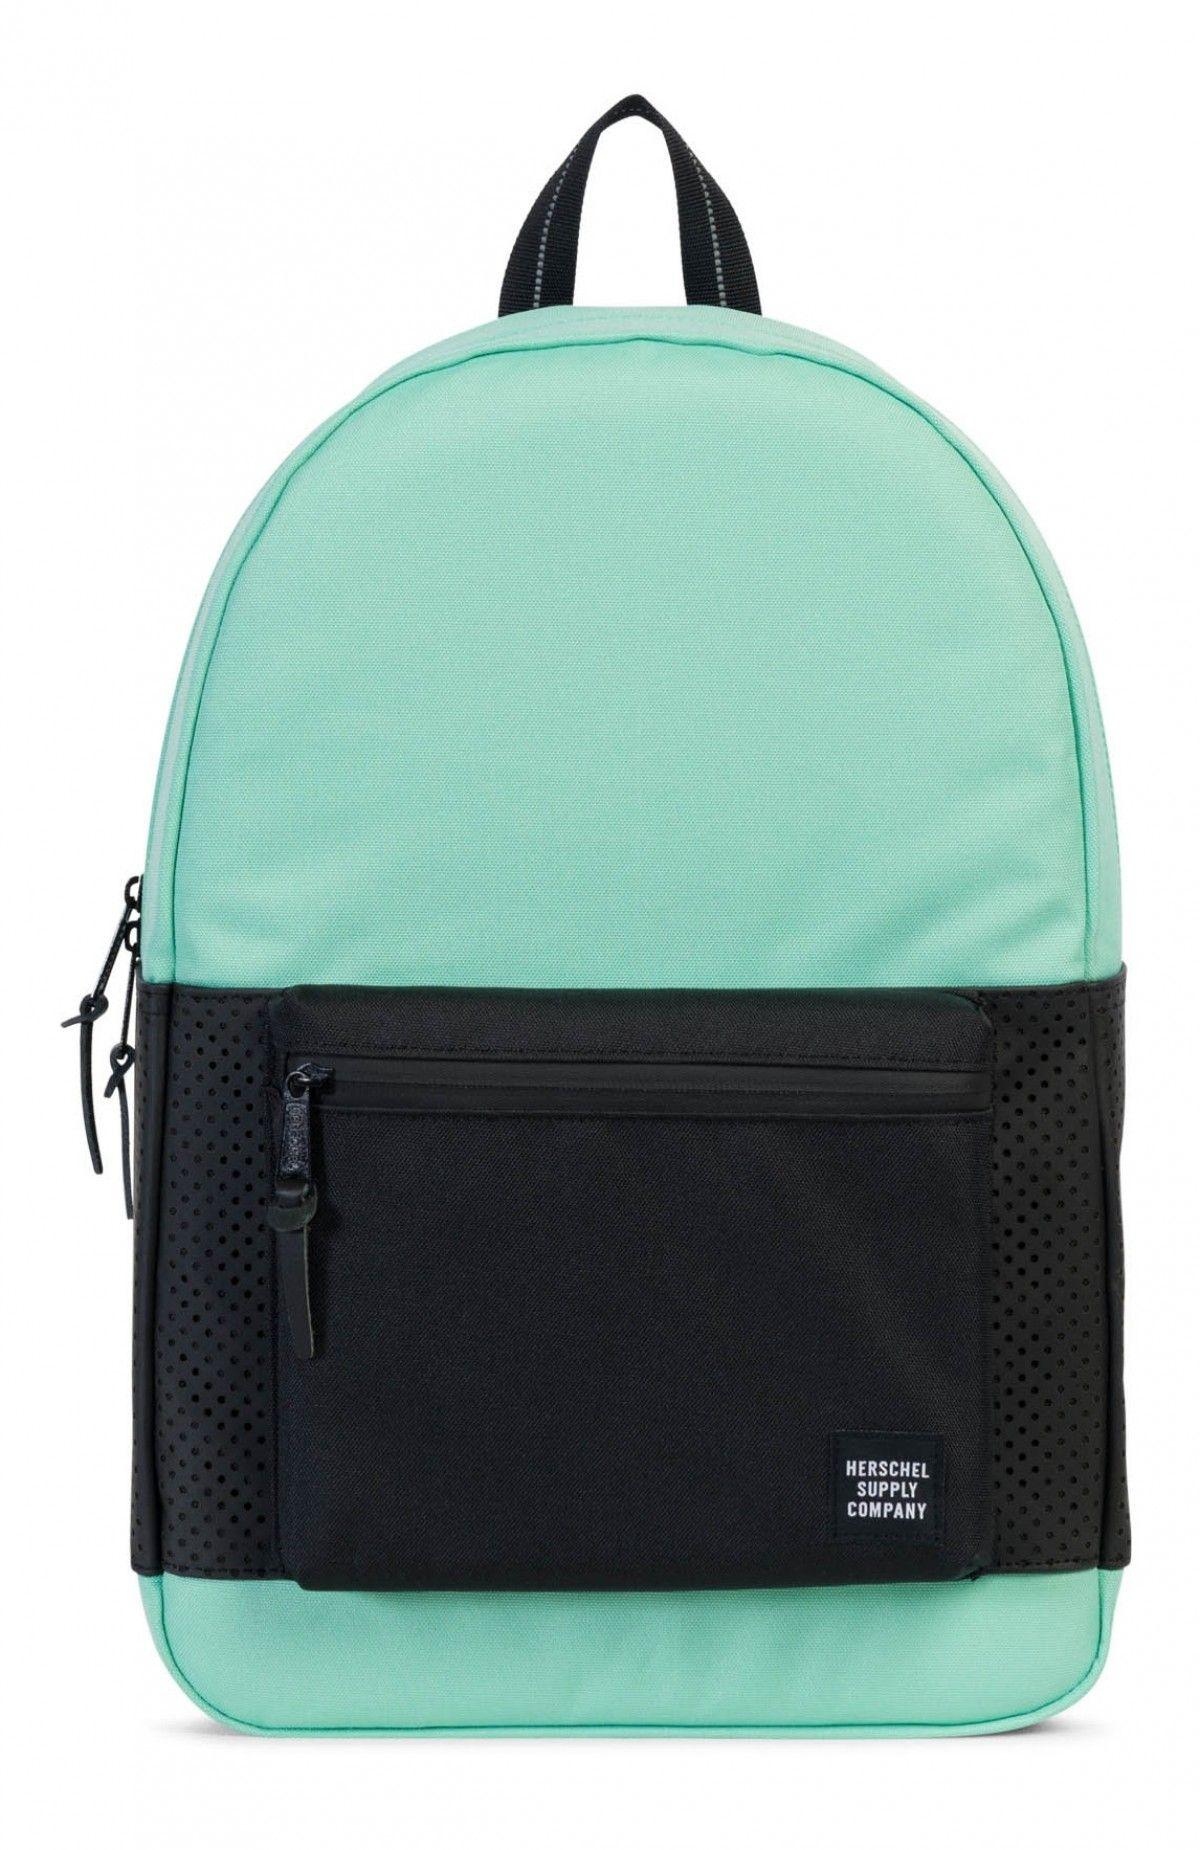 818158b8dd Herschel Settlement Backpack Aspect Poly Lucite Green Black ...